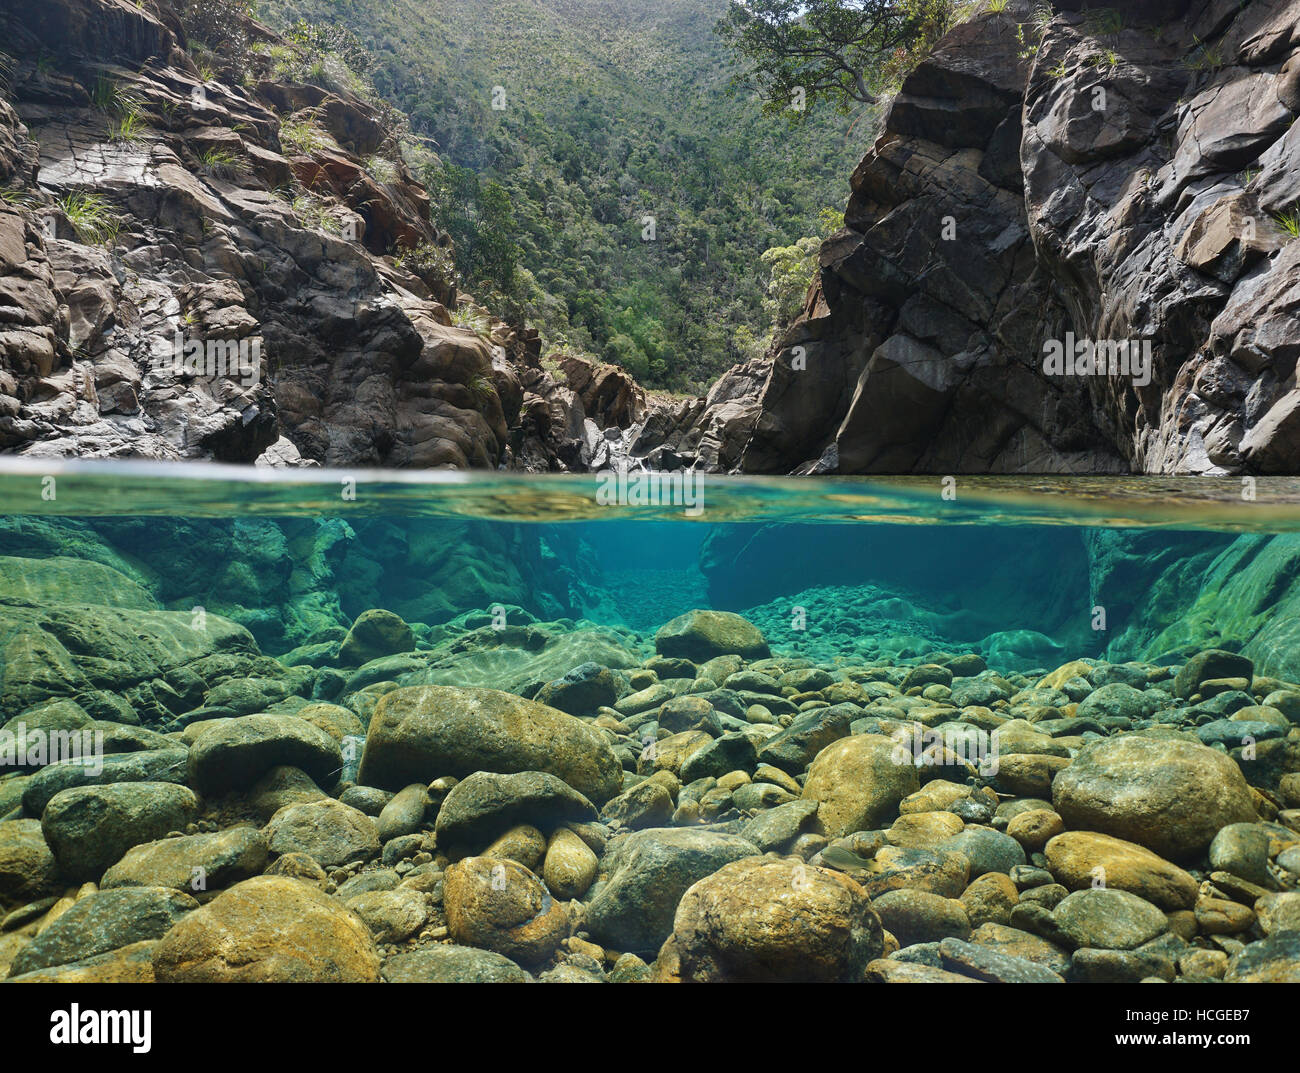 Rocks over and under the water split by waterline in a river with clear water, Dumbea river, New Caledonia Stock Photo